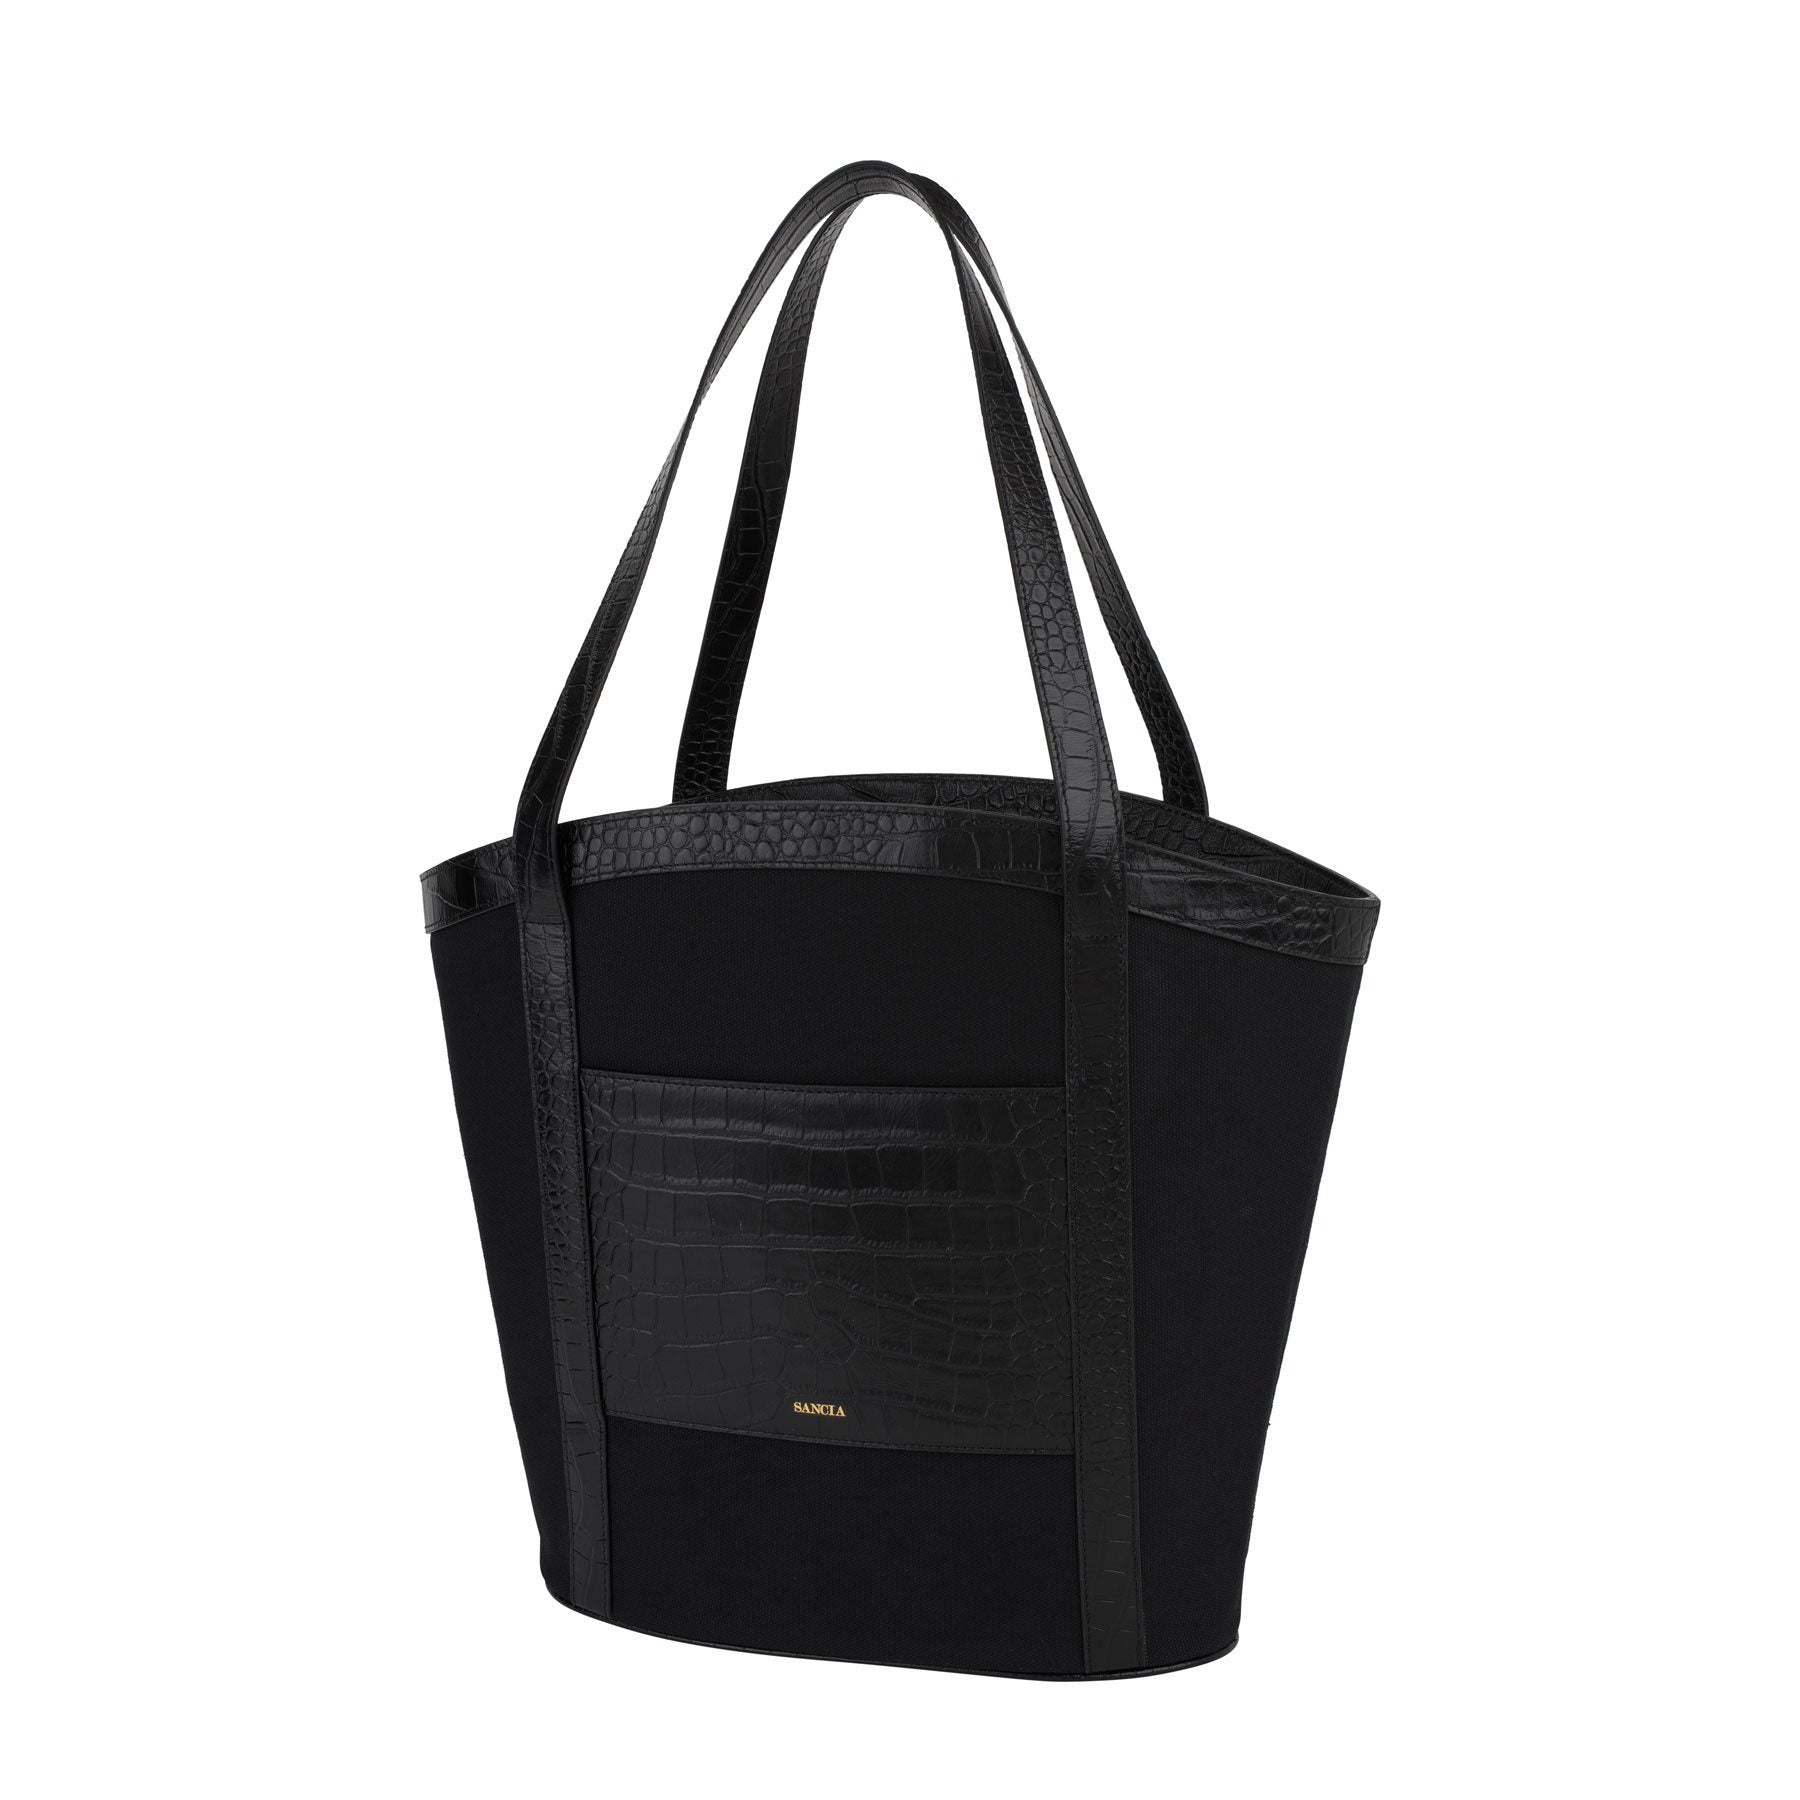 The Minka Tote Black Croc